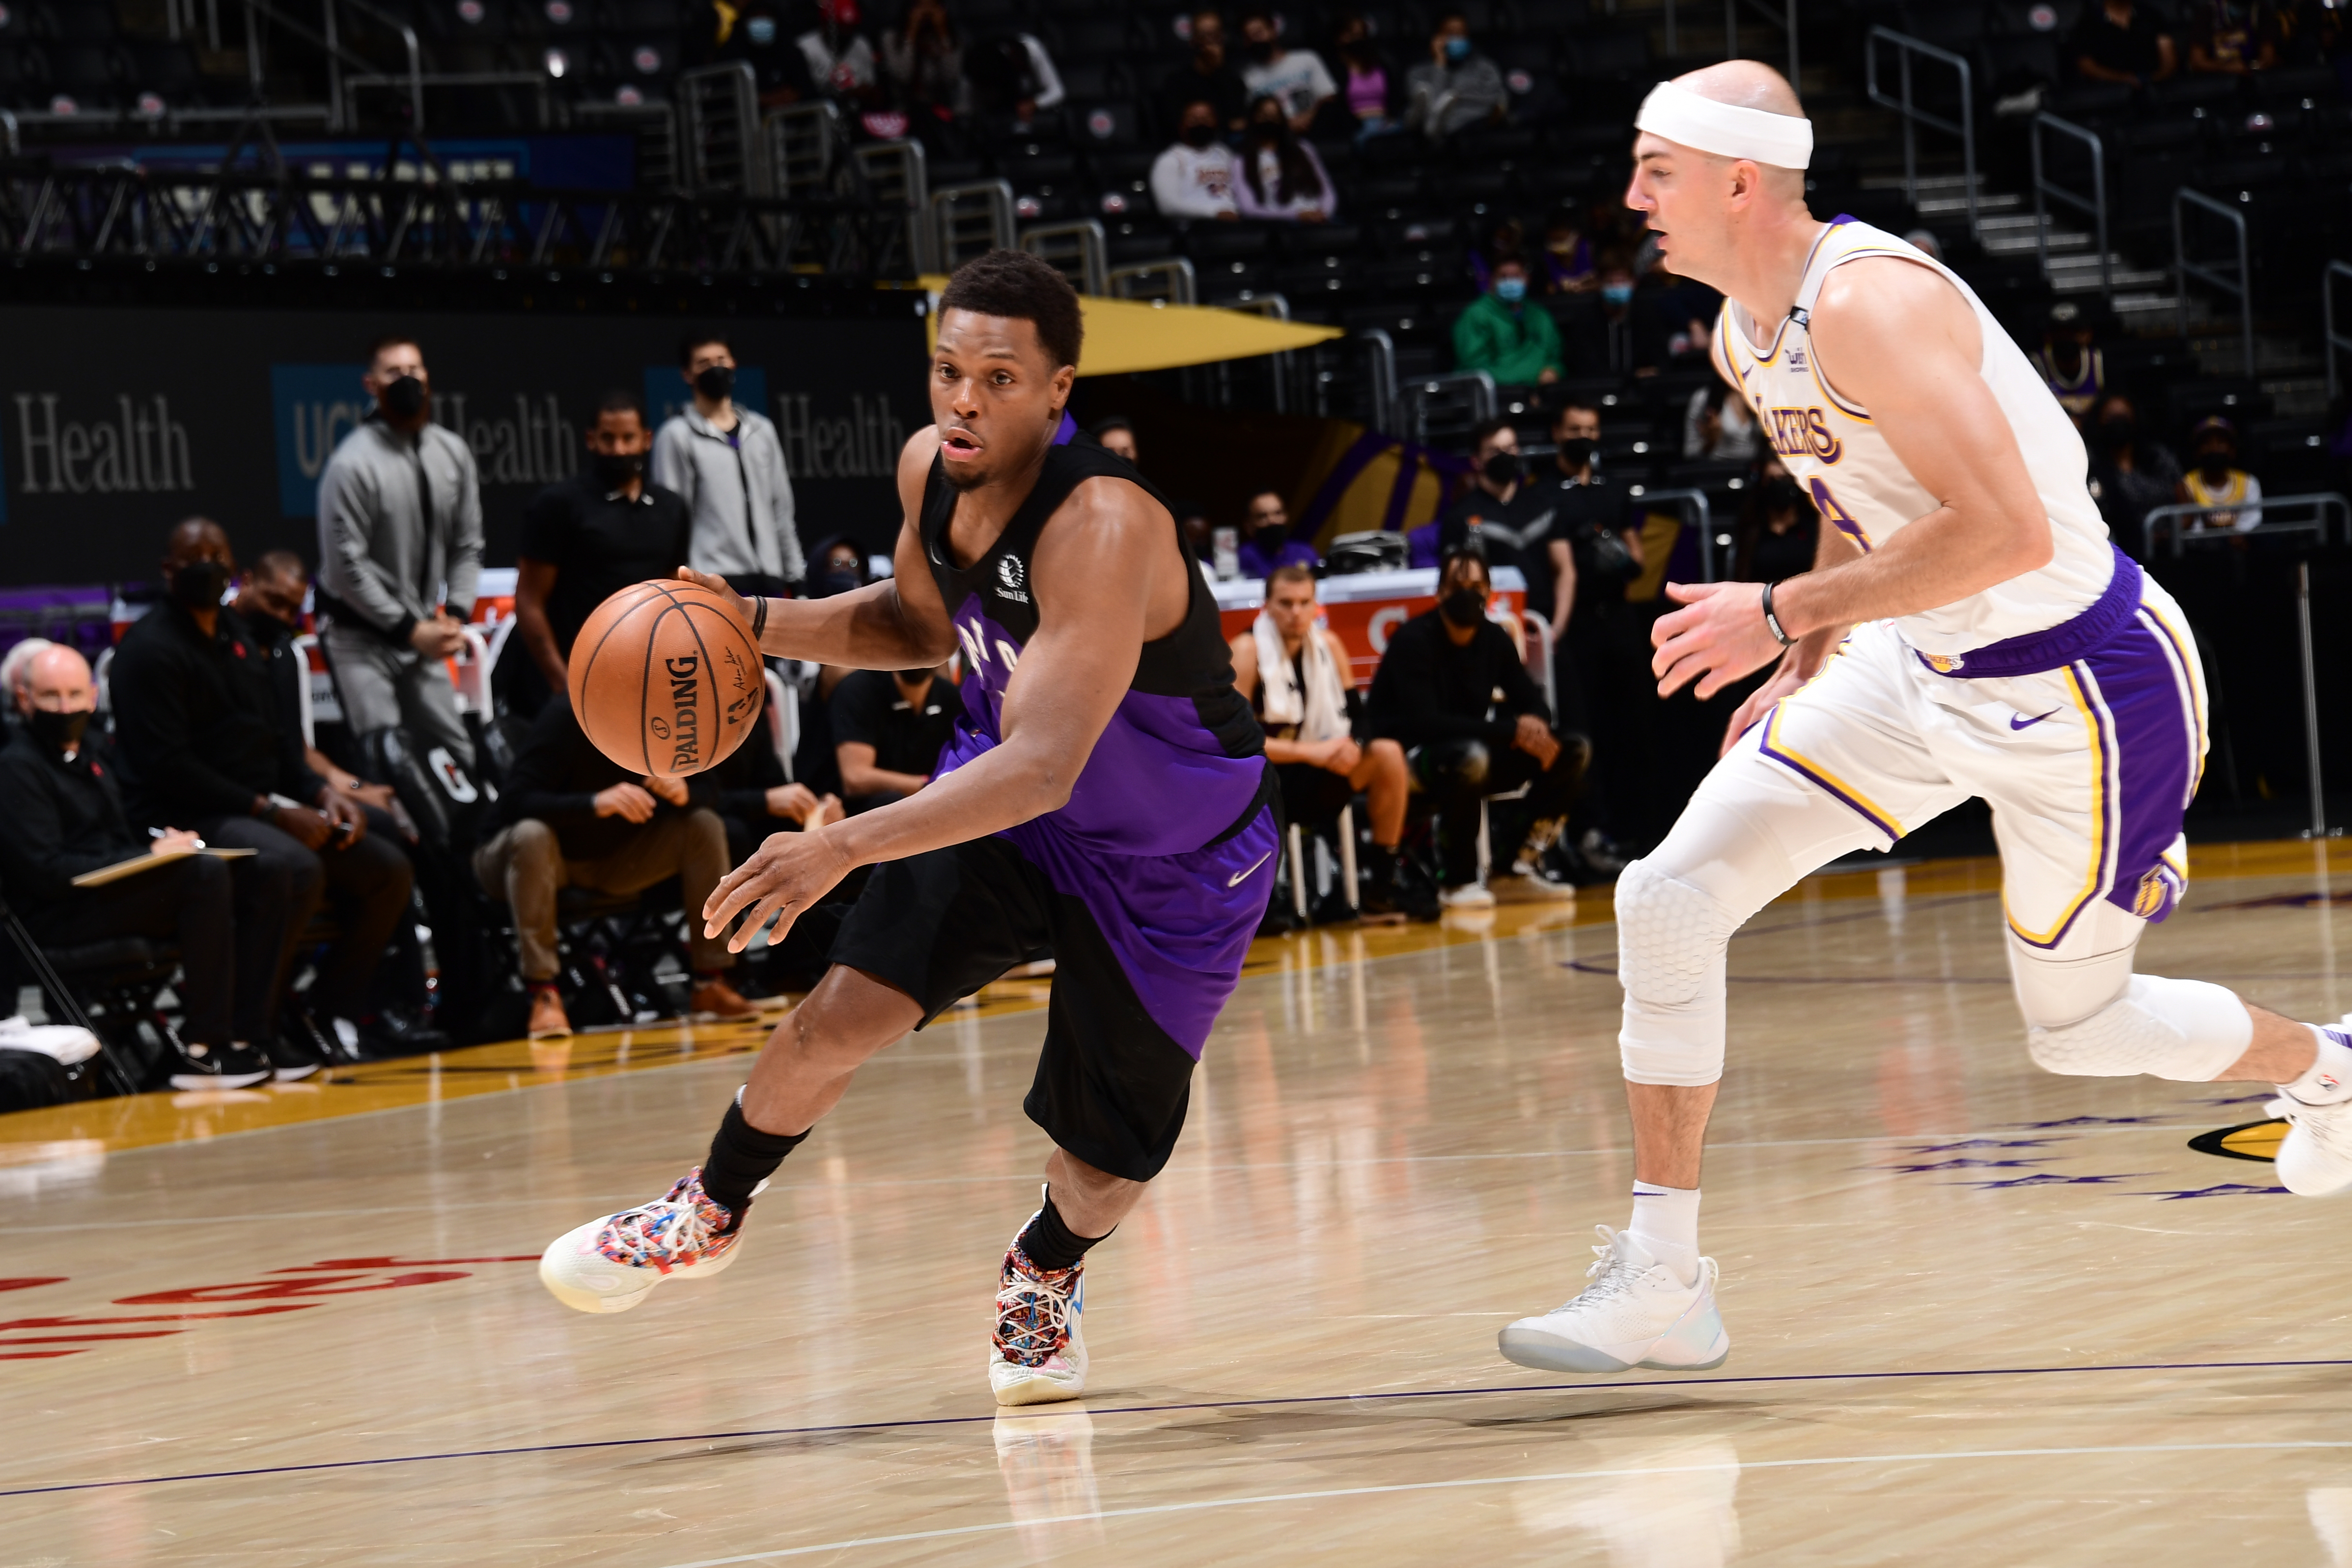 Kyle Lowry of the Toronto Raptors drives to the basket against the Los Angeles Lakers on May 2, 2021 at STAPLES Center in Los Angeles, California.